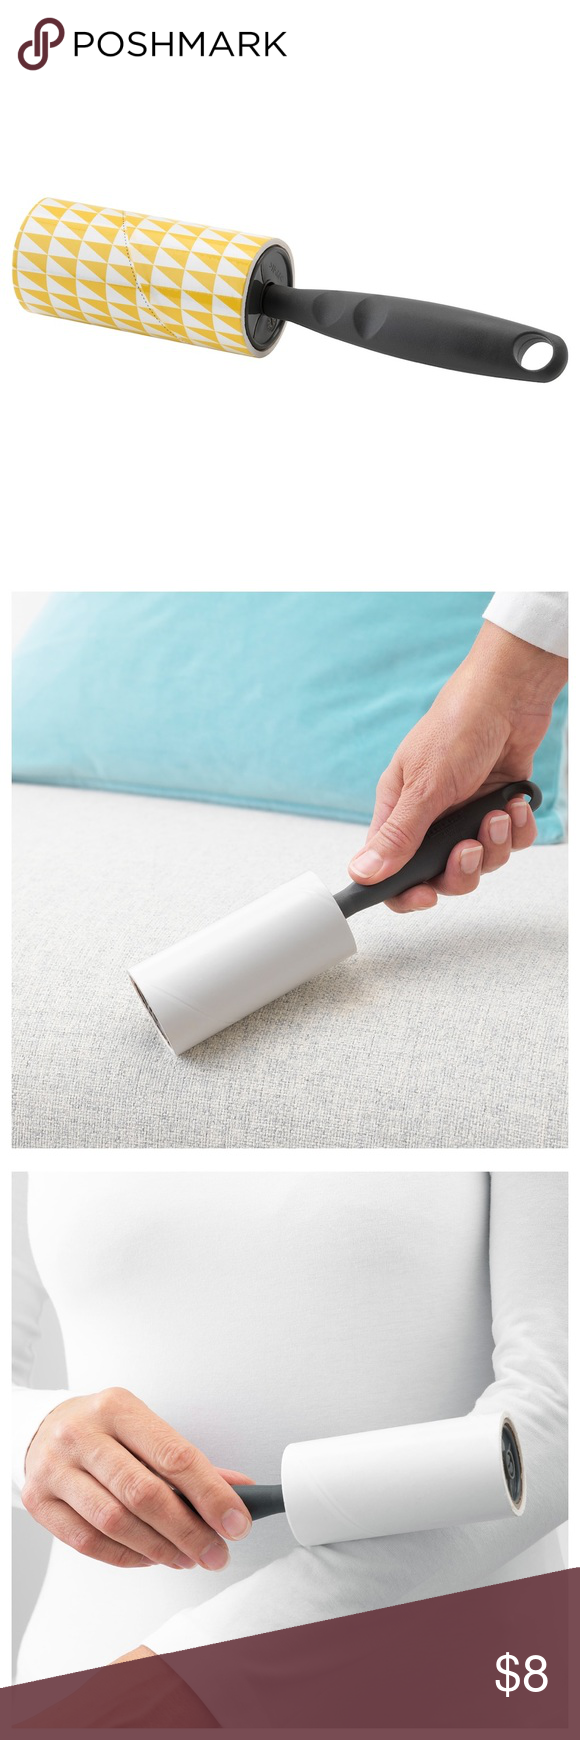 Lint Roller Comes With Extra 4 Rolls In 2020 Lint Lint Roller Roller